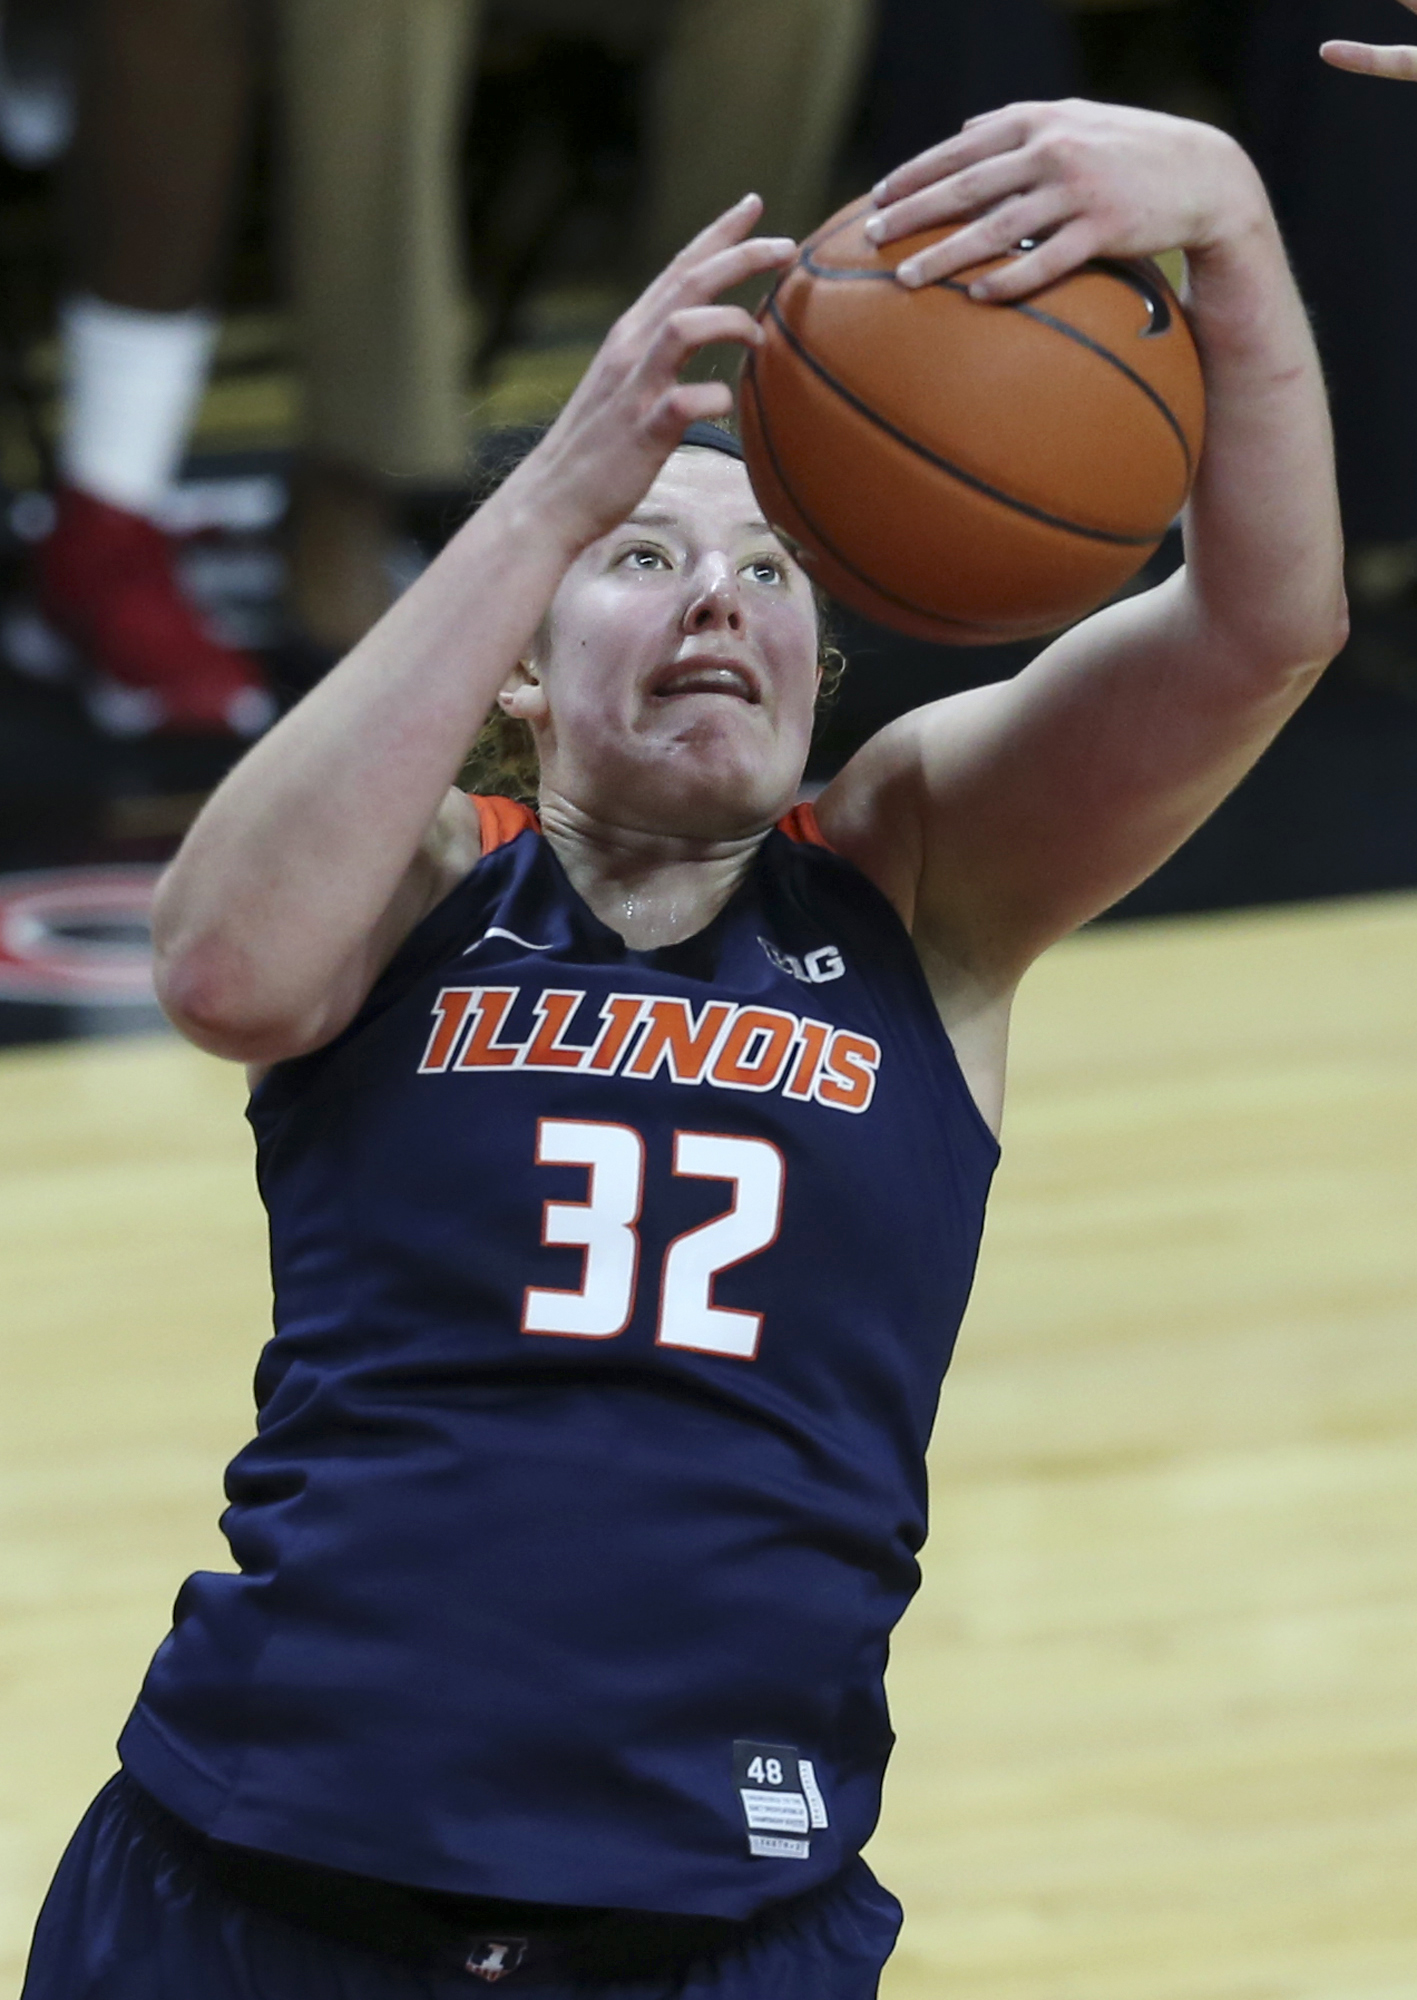 Illinois center Chatrice White (32) grabs a rebound during the second half of an NCAA college basketball game against Rutgers, Wednesday, Jan.13, 2016, in Piscataway, N.J. Rutgers won 67-54. (AP Photo/Mel Evans)